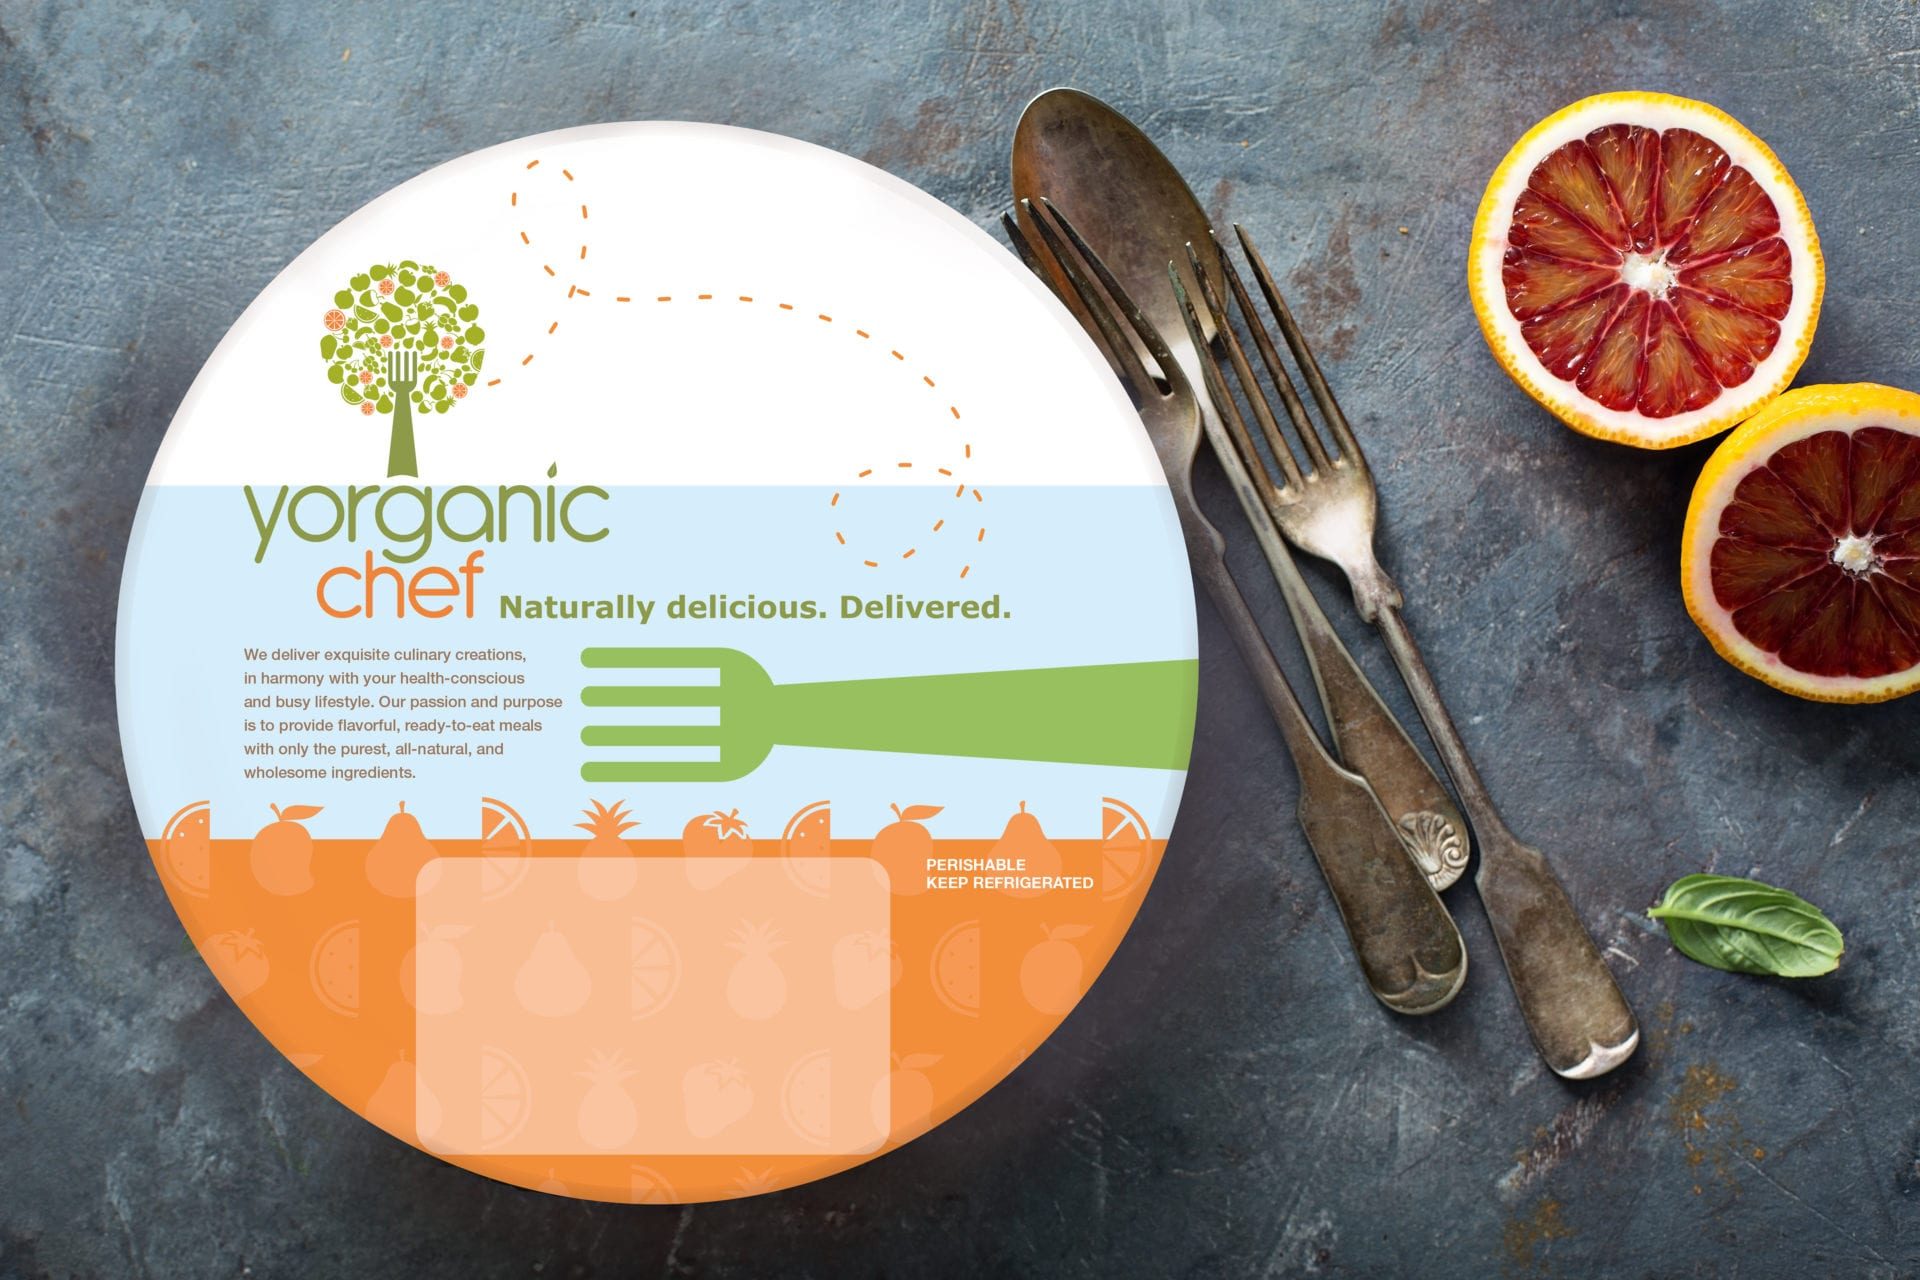 A Yorganic Chef branded food bowl